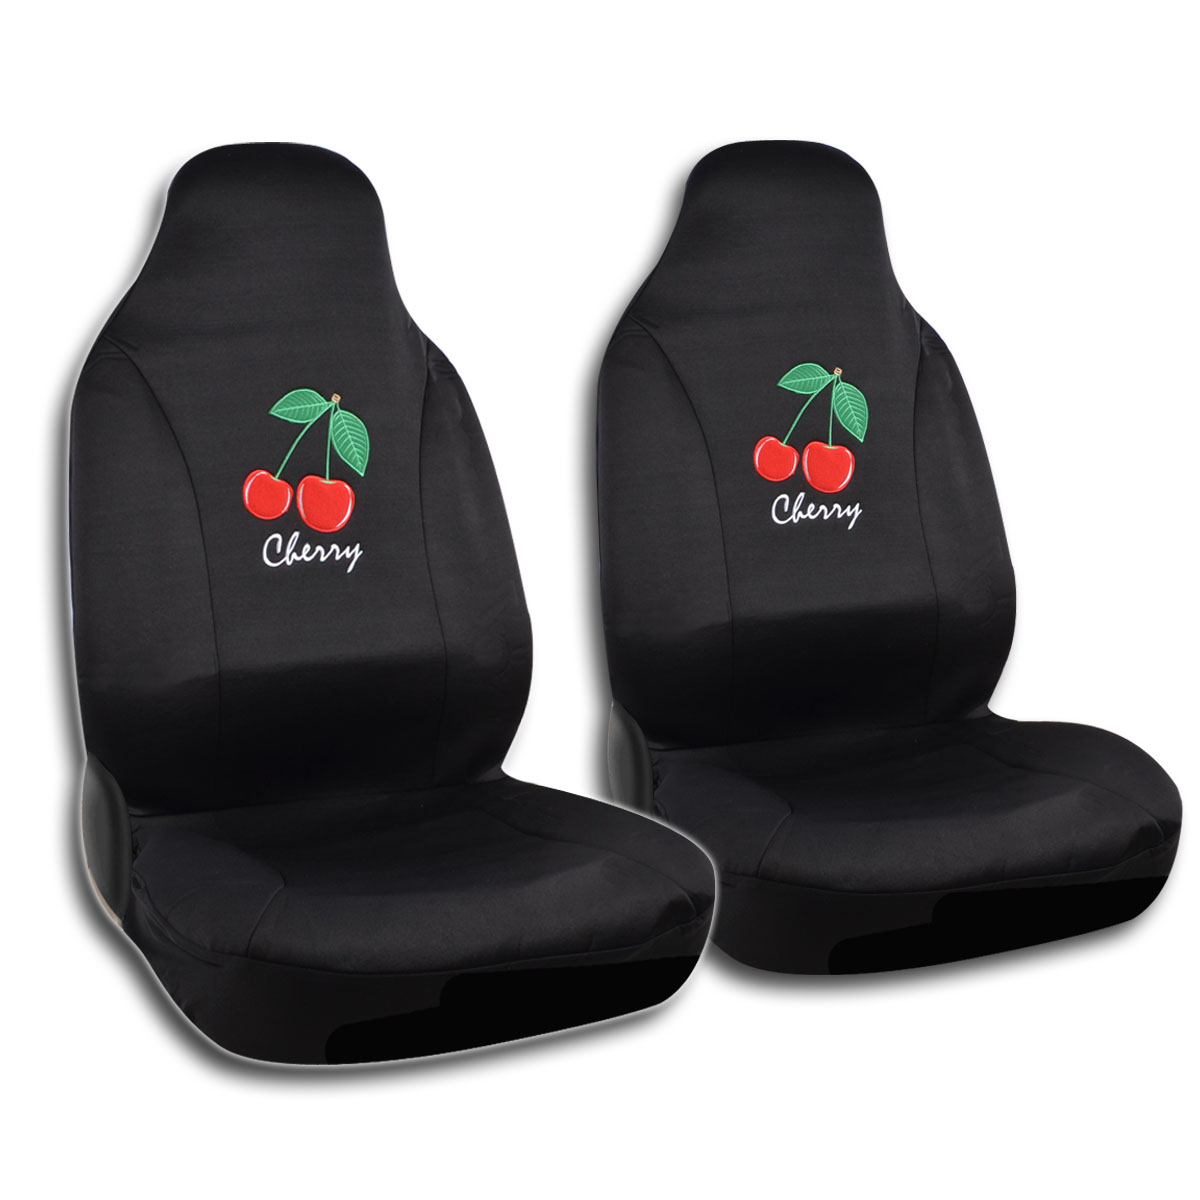 Car Seat Covers Custom Car Seat Covers Order Online